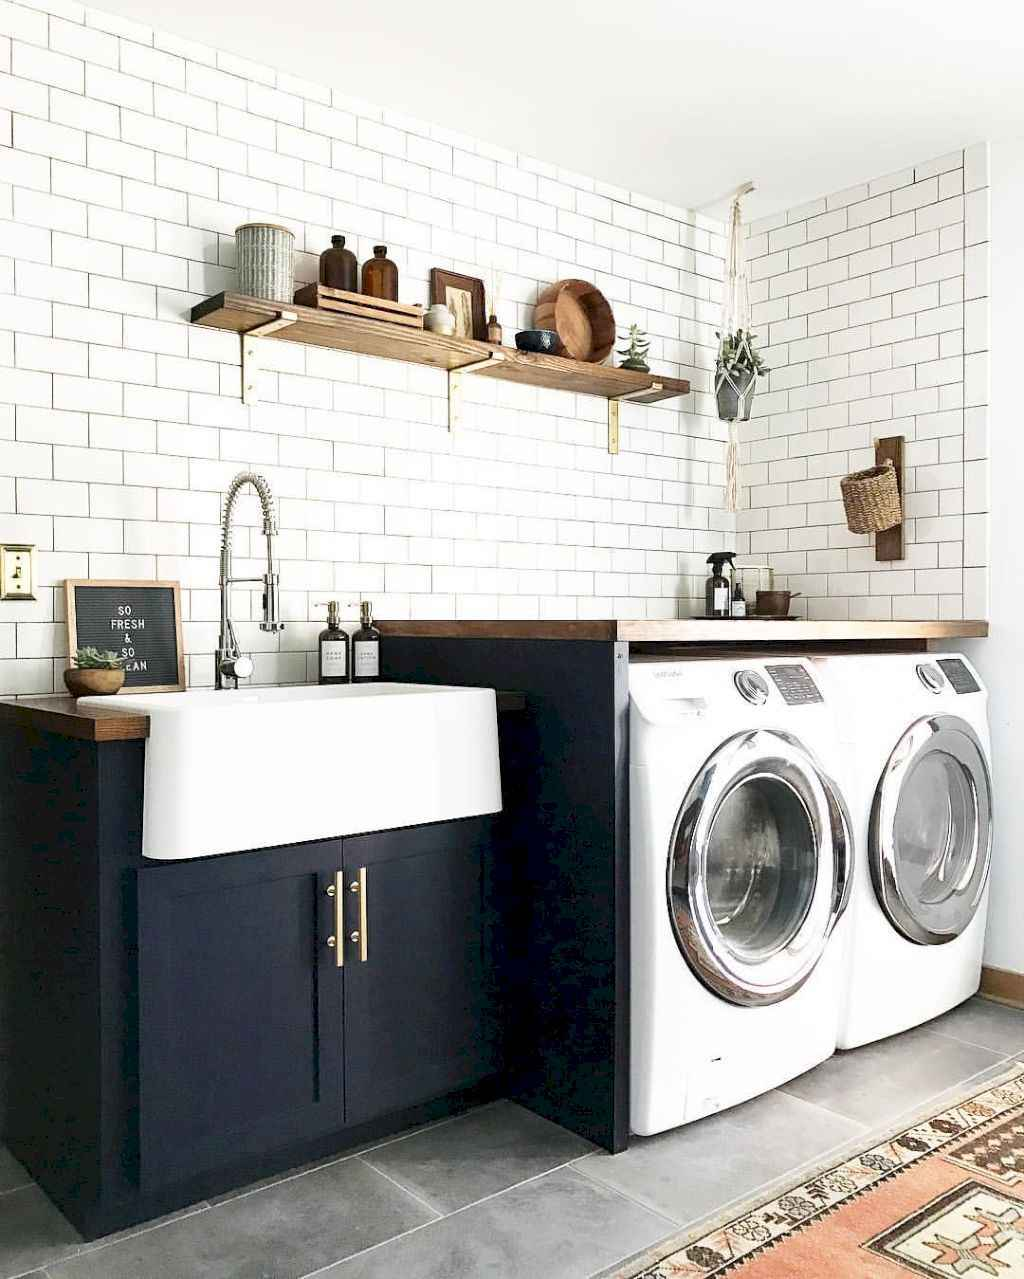 45 Rustic Farmhouse Laundry Room Design Ideas and Makeover (4)